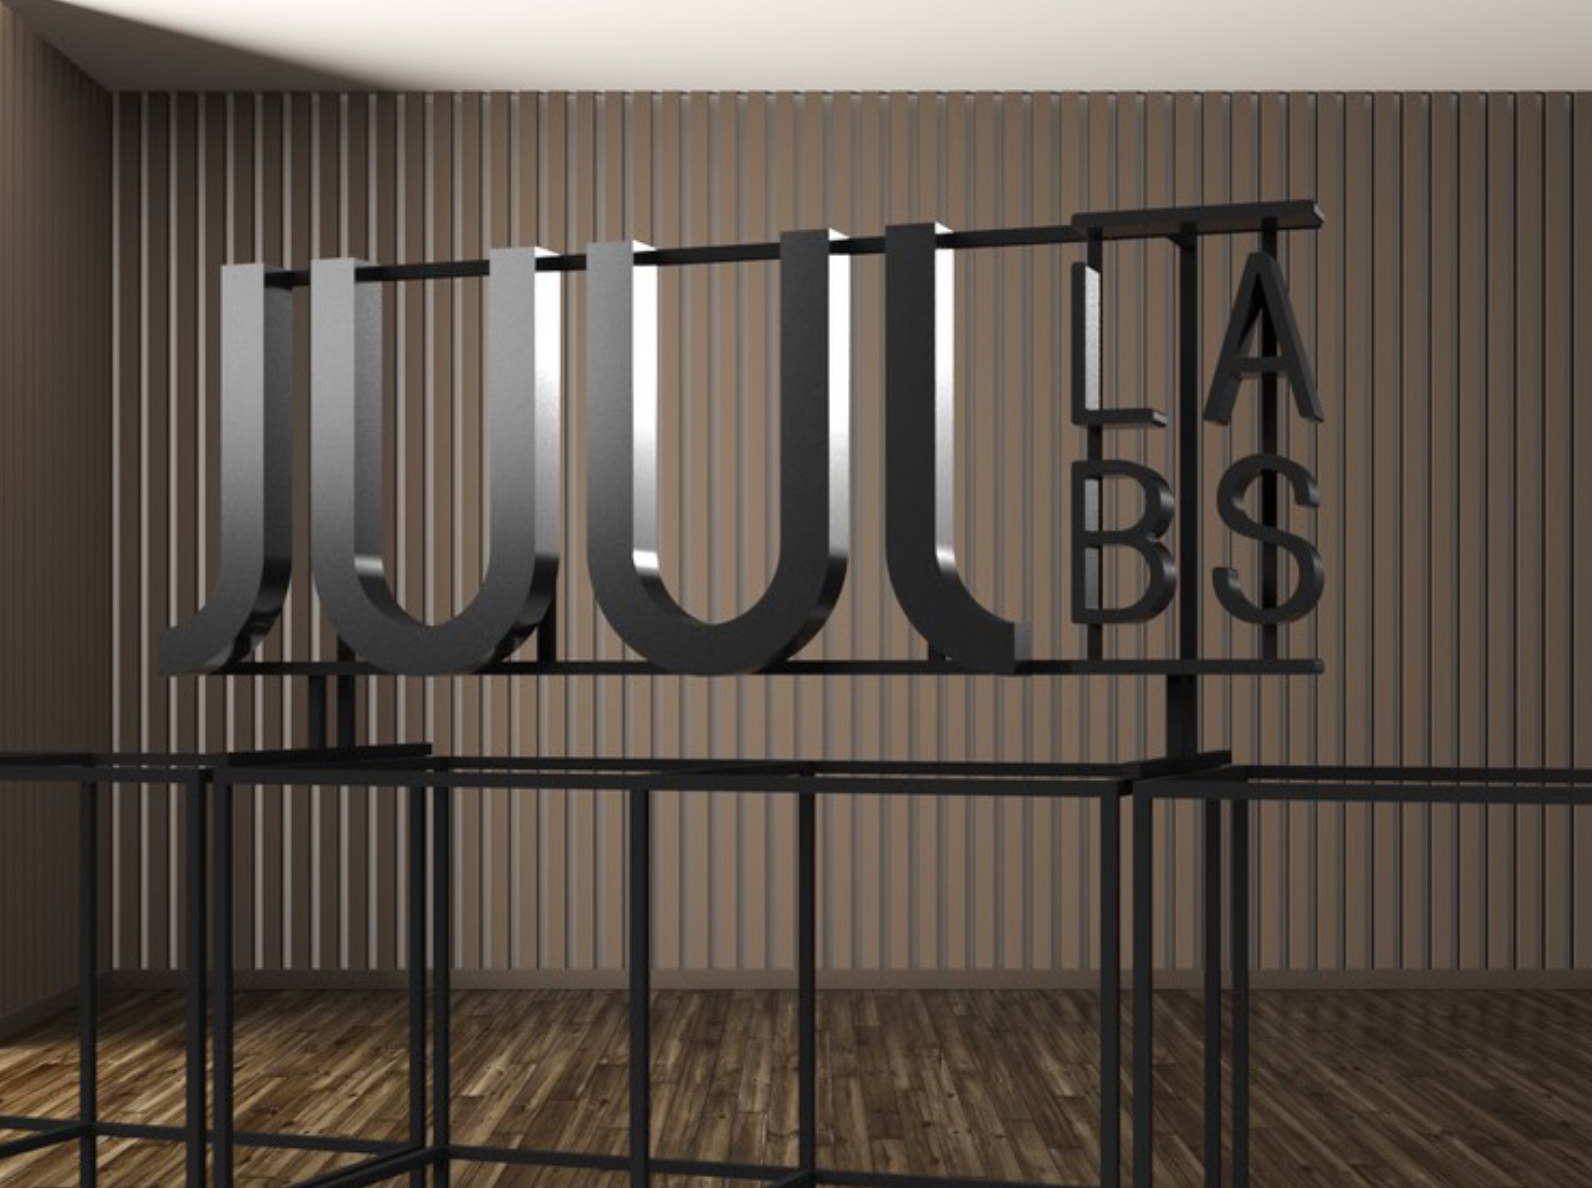 Black metal floating letter shelf sign for the San Francisco office of Juul, an electronic cigarette company.